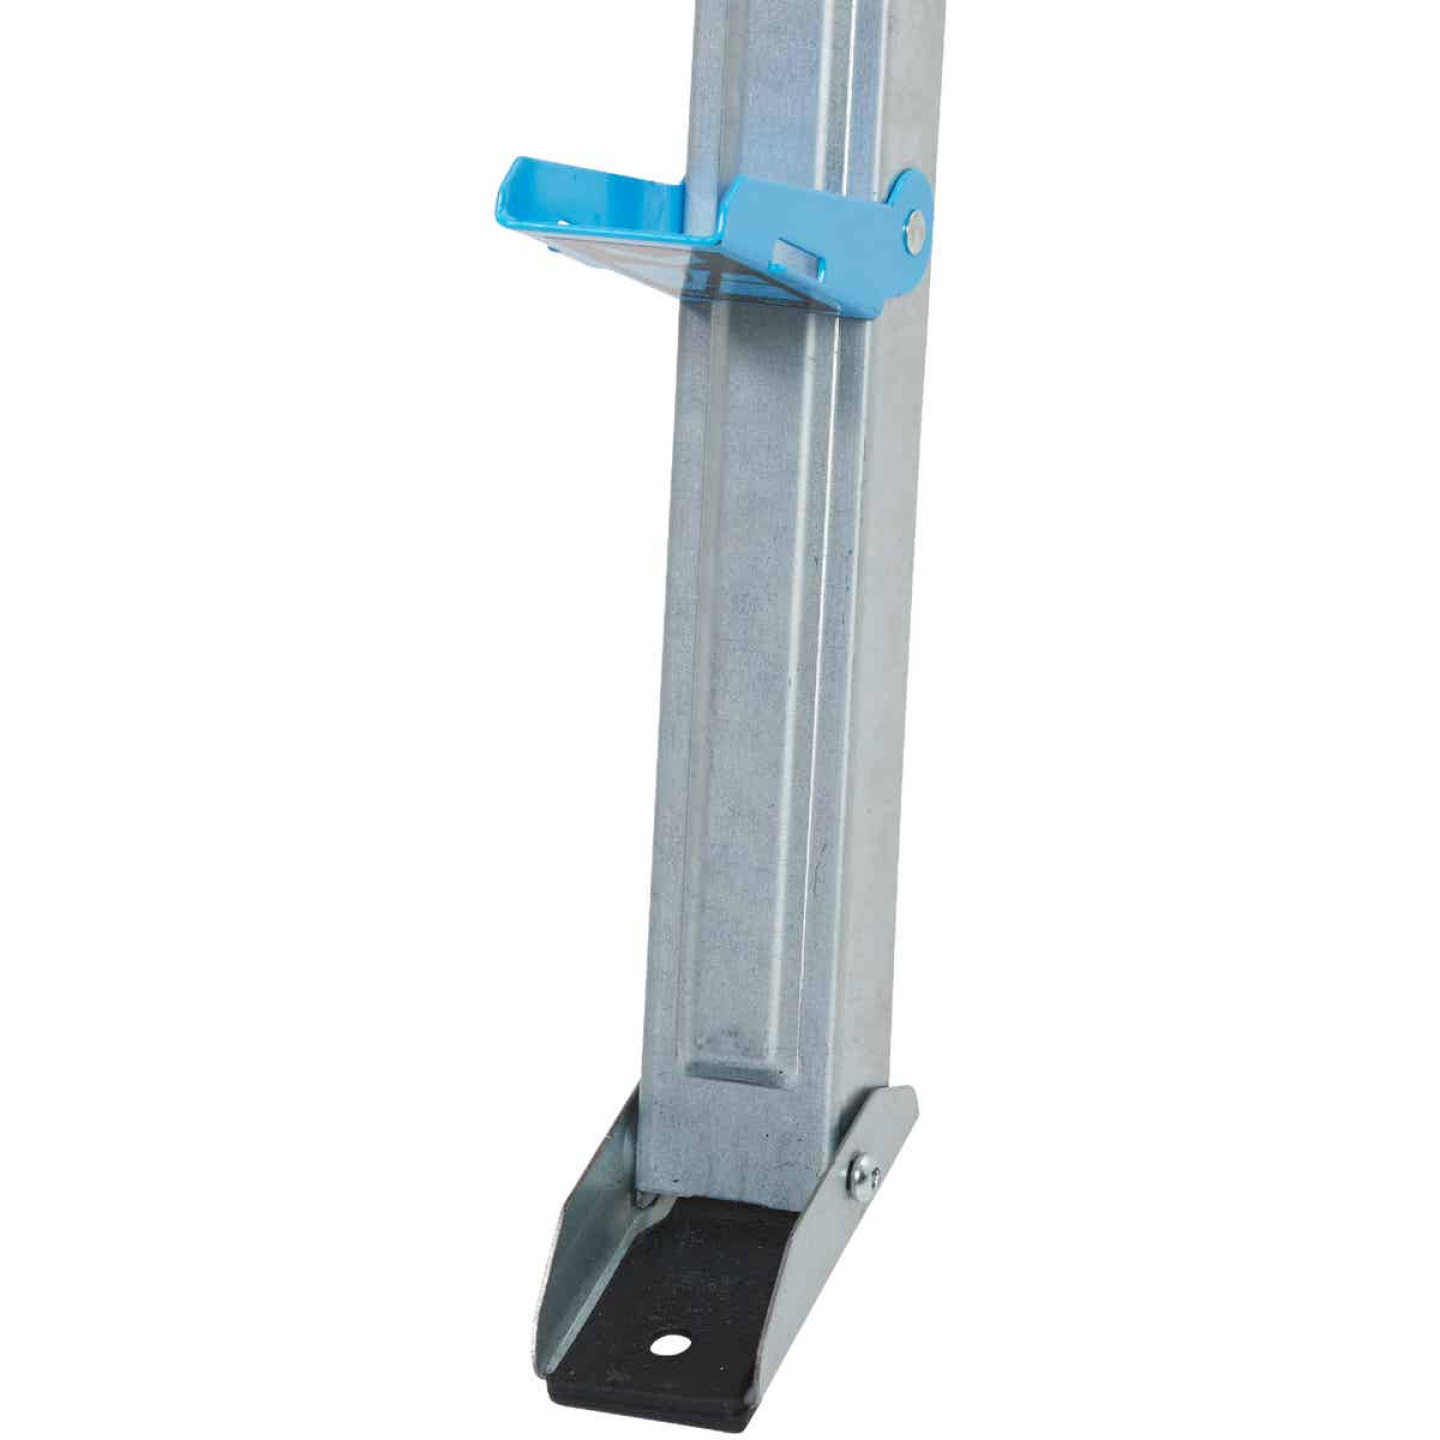 Channellock 46-1/2 In. L Steel Folding Sawhorse, 2200 Lb. Capacity Image 8